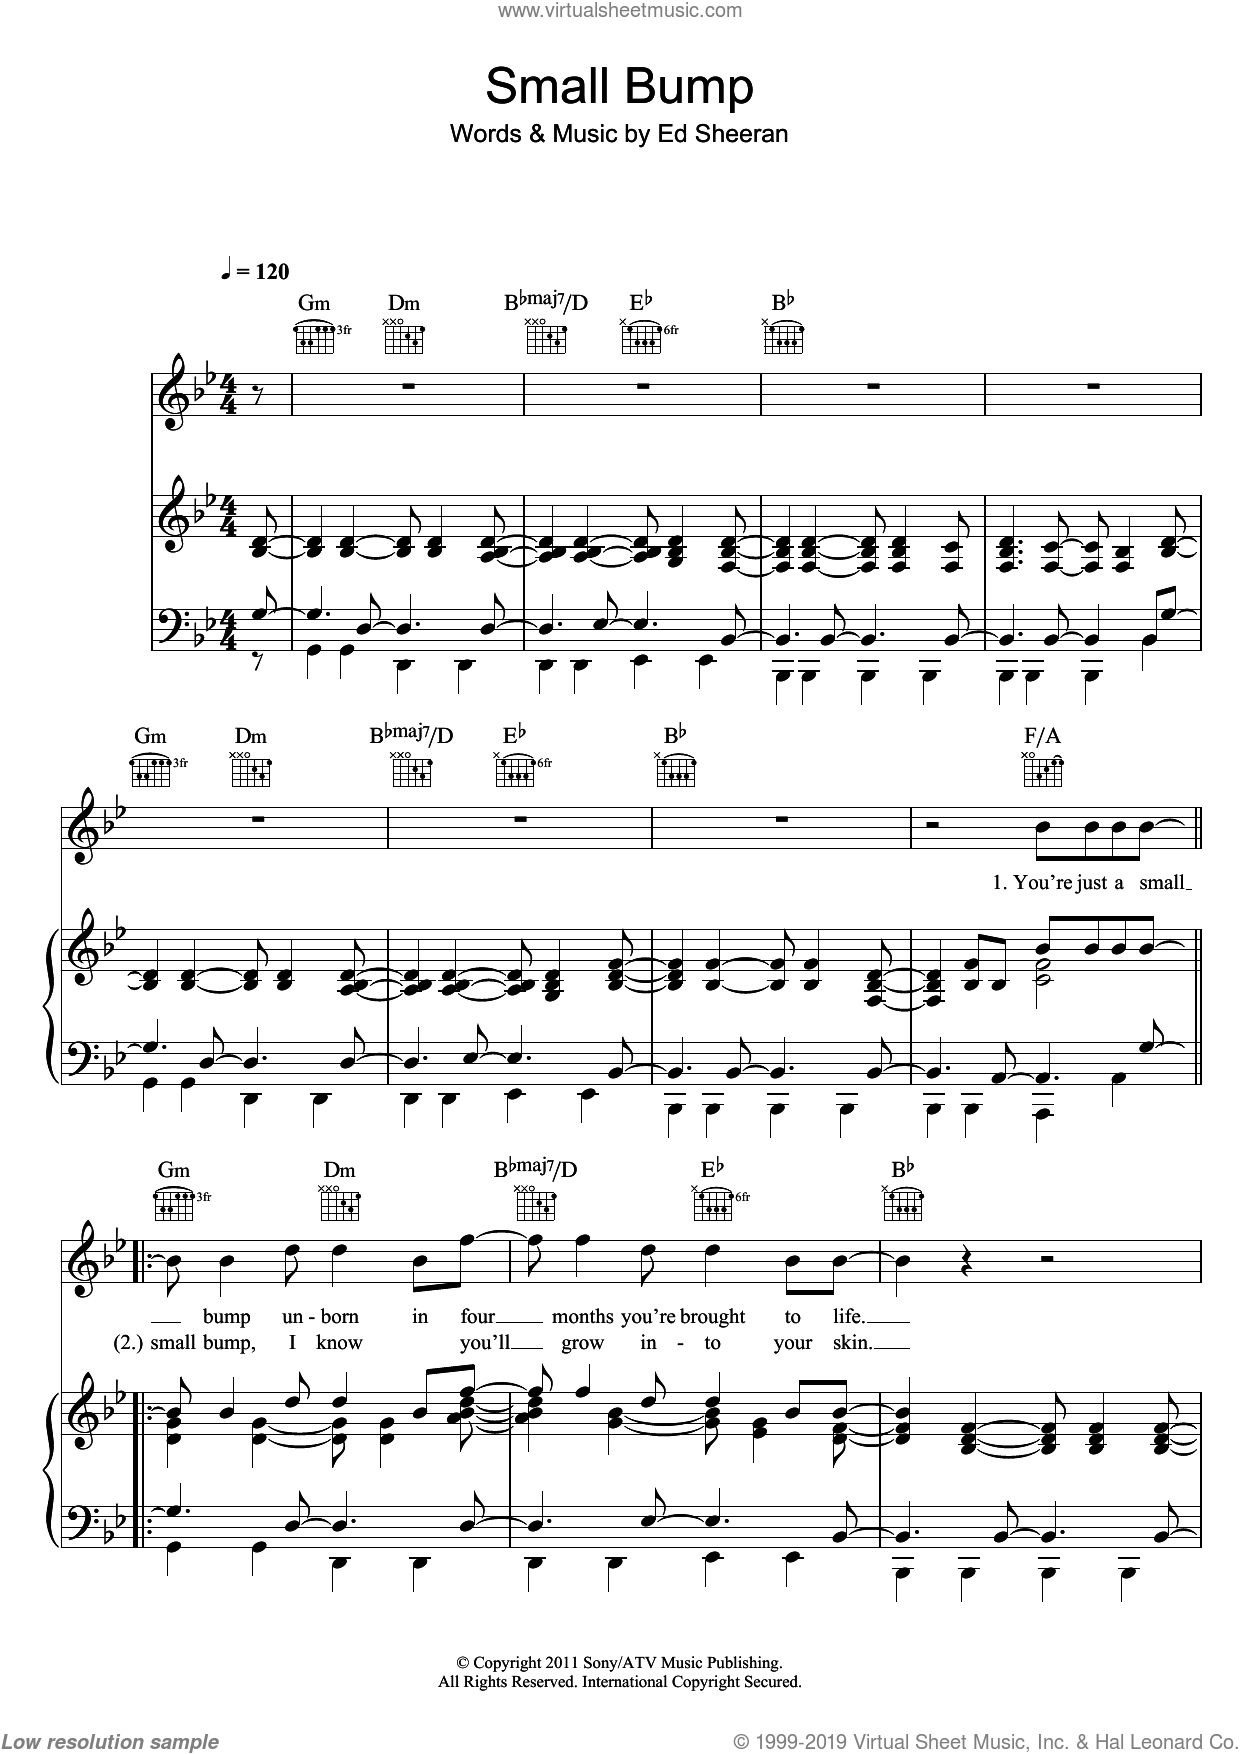 Small Bump sheet music for voice, piano or guitar by Ed Sheeran. Score Image Preview.